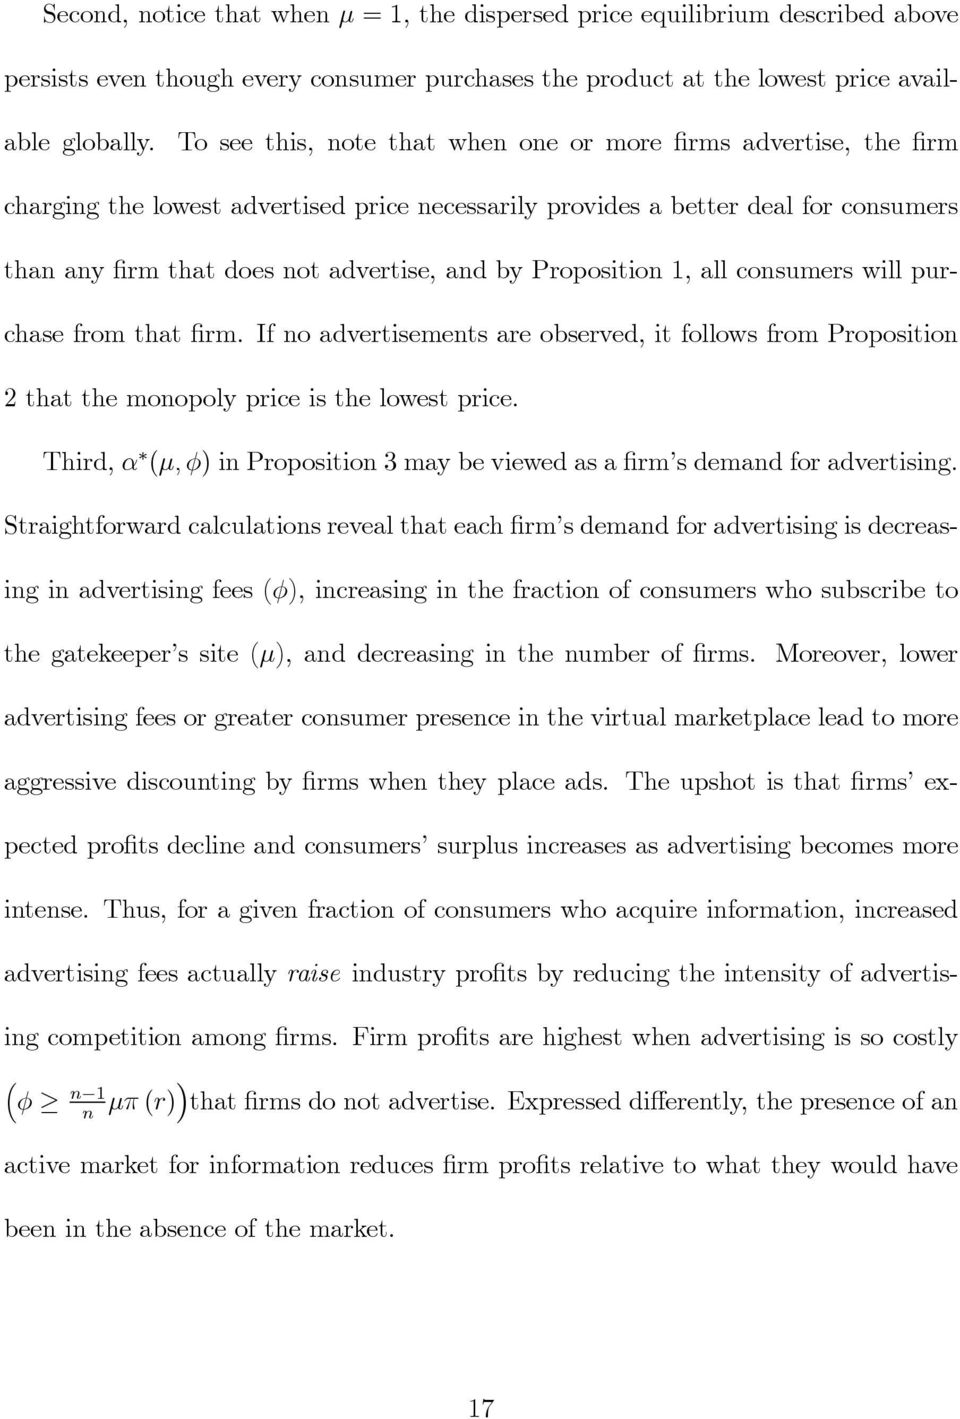 Proposition 1, all consumers will purchase from that rm. If no advertisements are observed, it follows from Proposition 2 that the monopoly price is the lowest price.